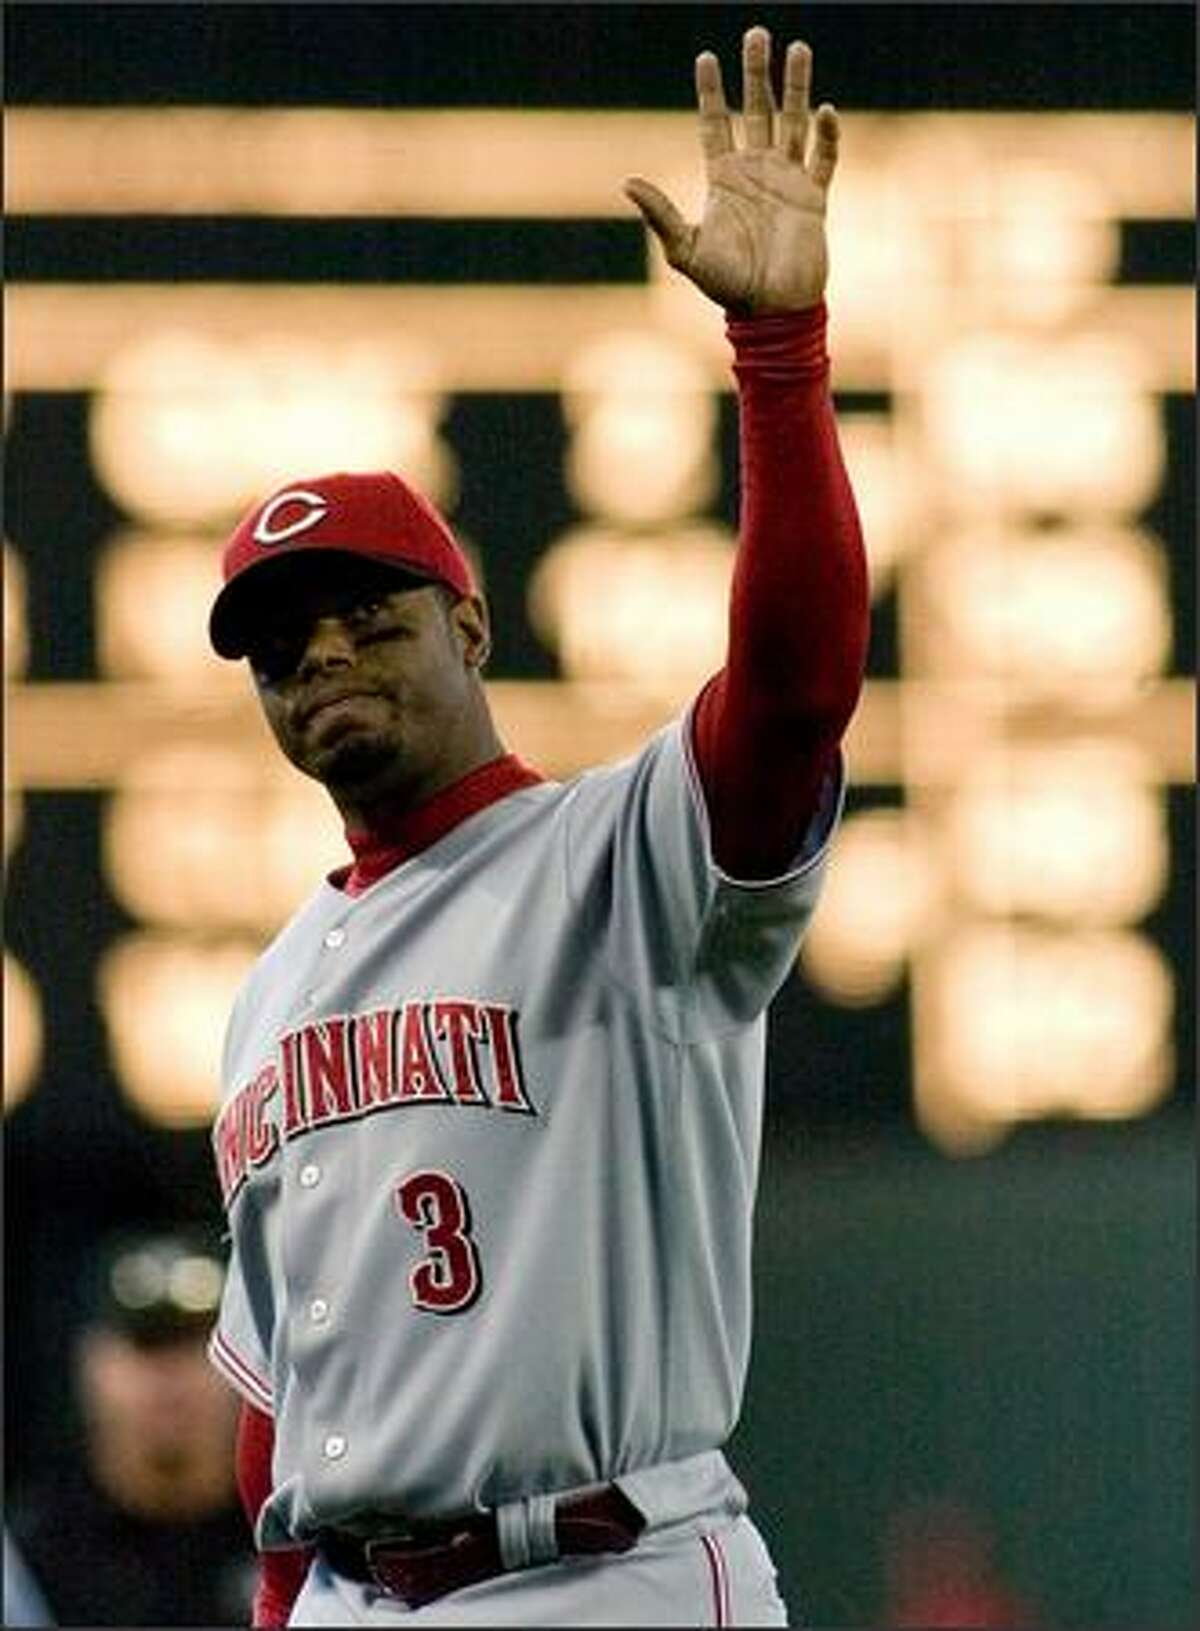 Ken Griffey Jr., waves to fans at Safeco Field after departing the field at the end of the eighth inning.